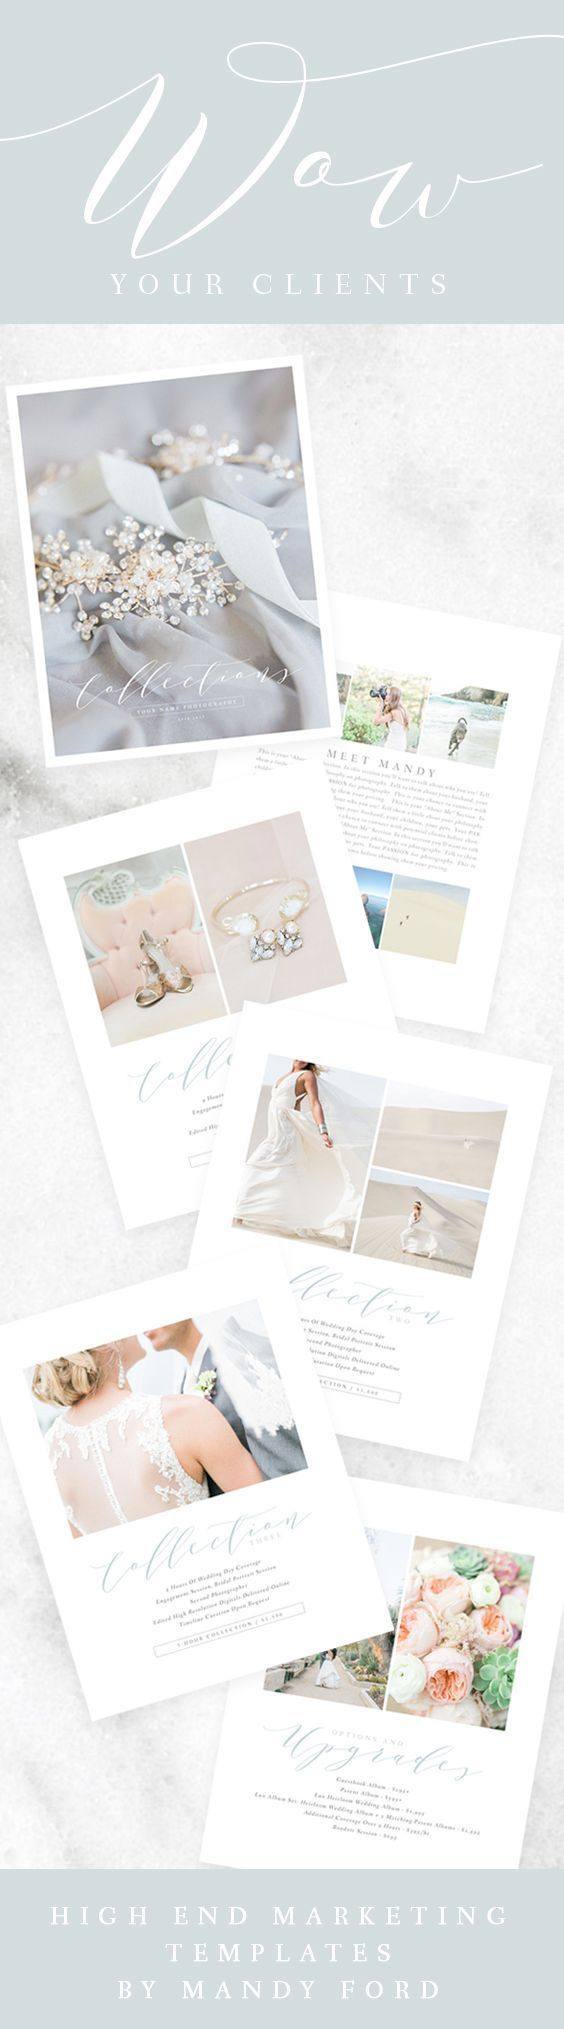 Guide Templates Photography Price List Multipage Guide  Photographer Pricing Guide .